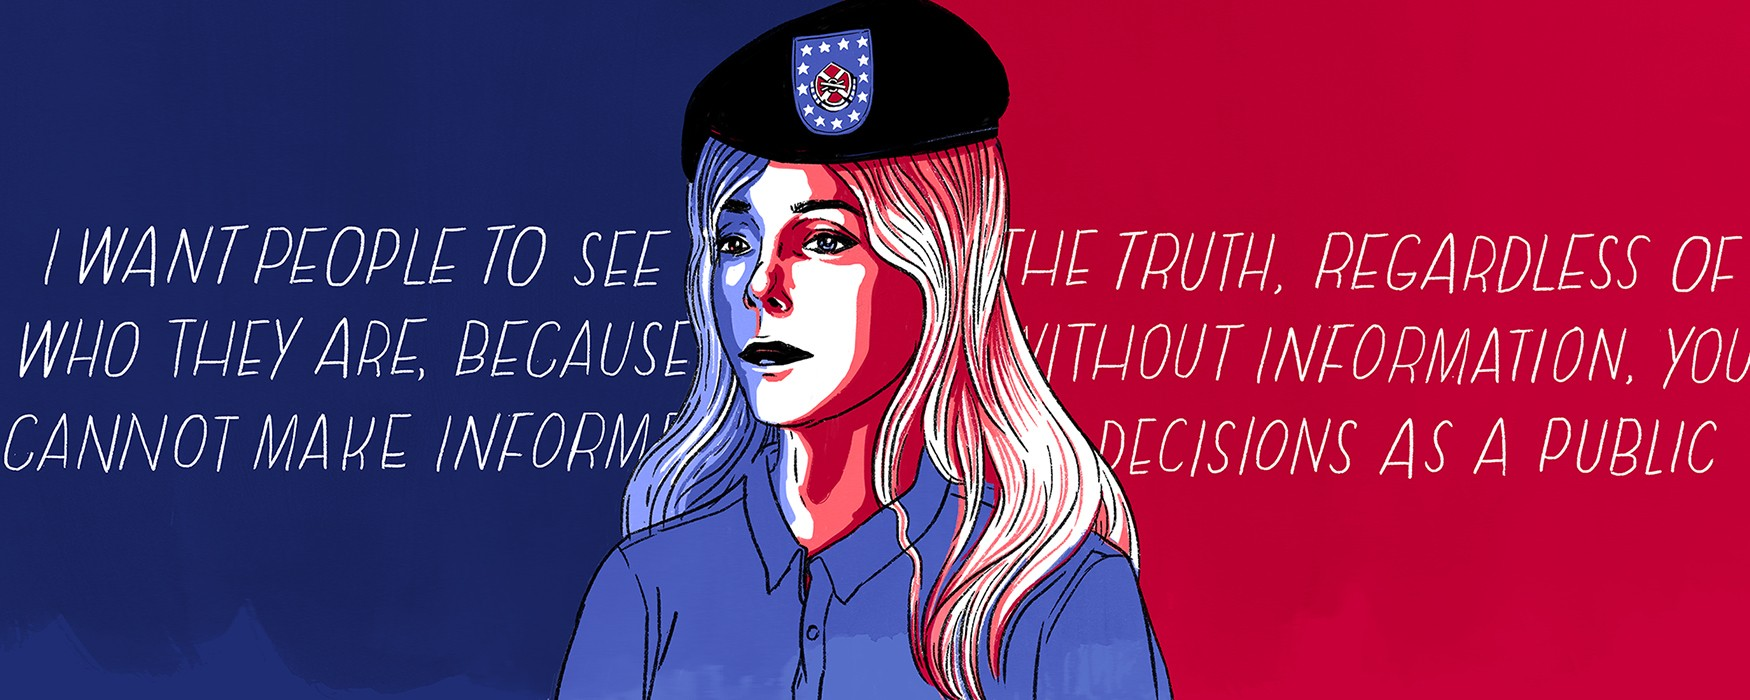 'It's Hard to Show the World I Exist': Chelsea Manning's Final Plea to Be Seen